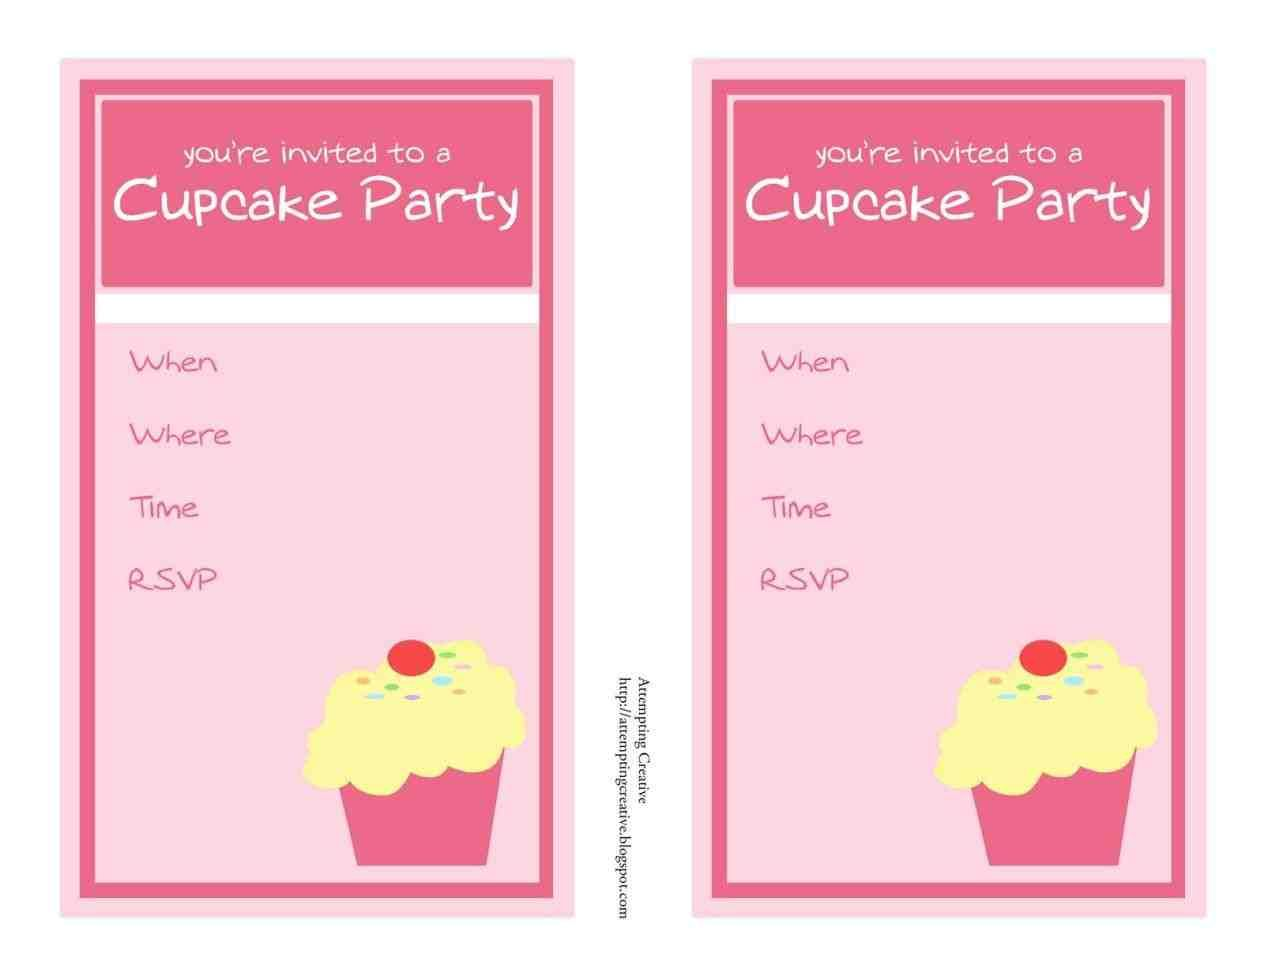 Full size of colorsfree printable invitation maker plus online full size of colorsfree printable invitation maker plus online birthday invitations together with create full size of colorschalkboard birthday stopboris Images